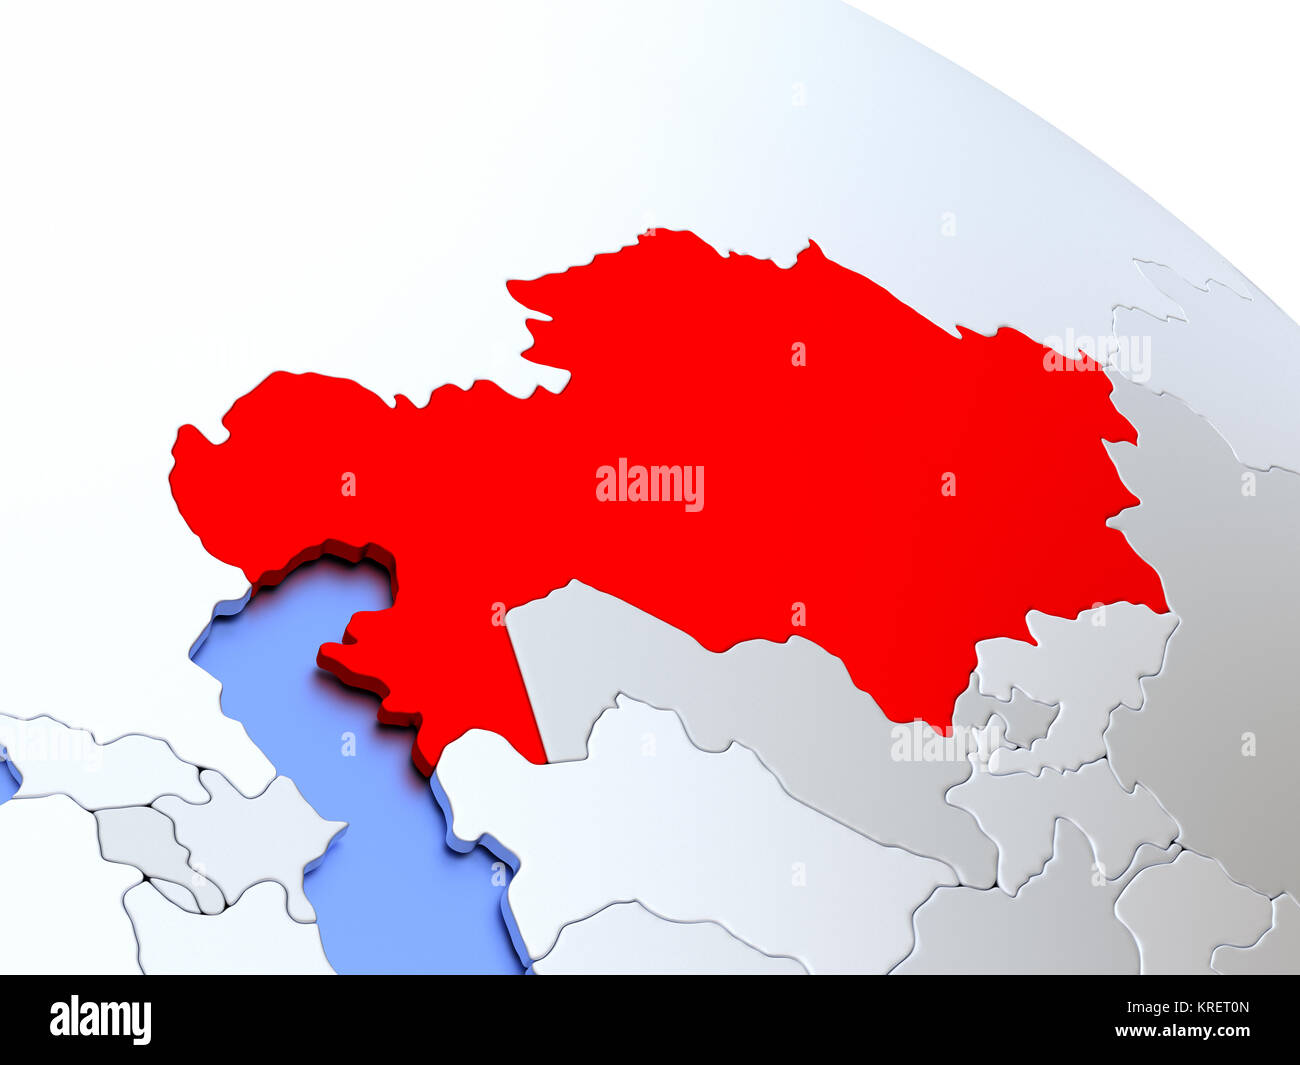 Picture of: Kazakhstan On World Map Stock Photo Alamy